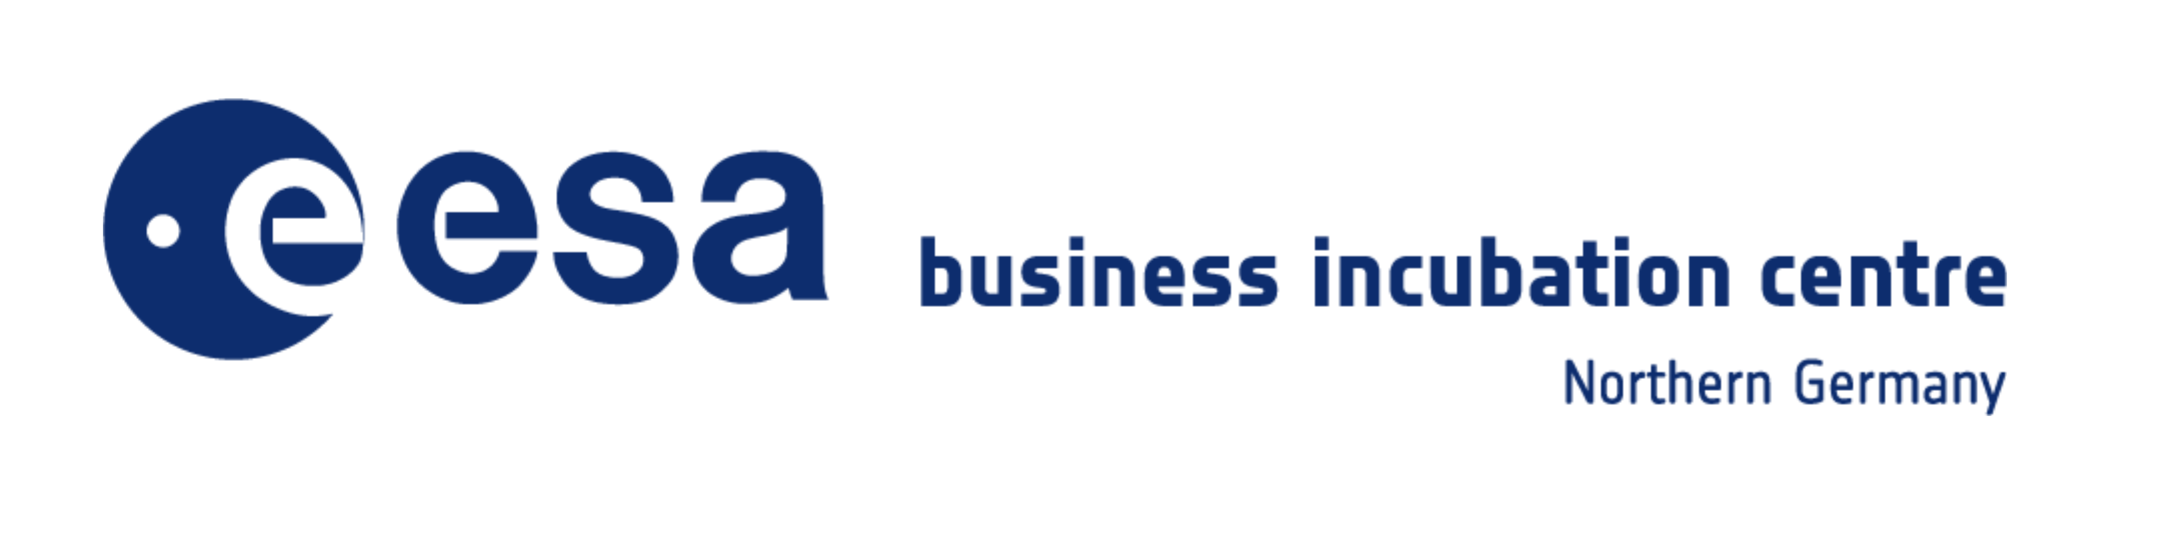 ESA Business Incubation Center Northern Germany Logo